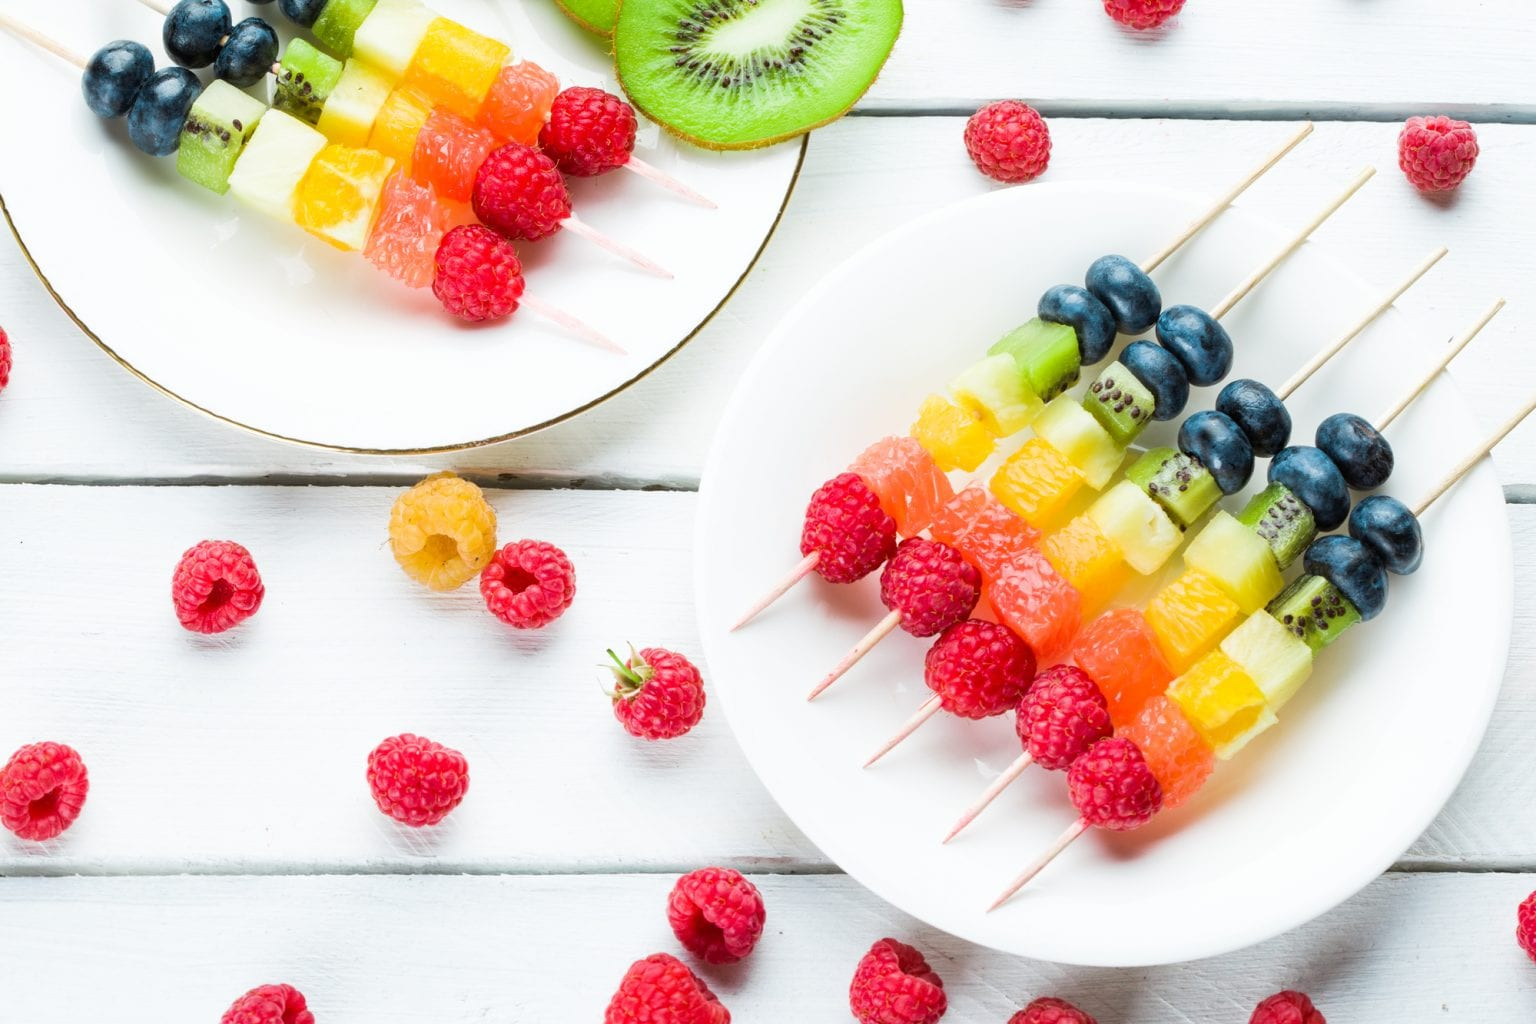 Super Easy Snack Recipes For The Family